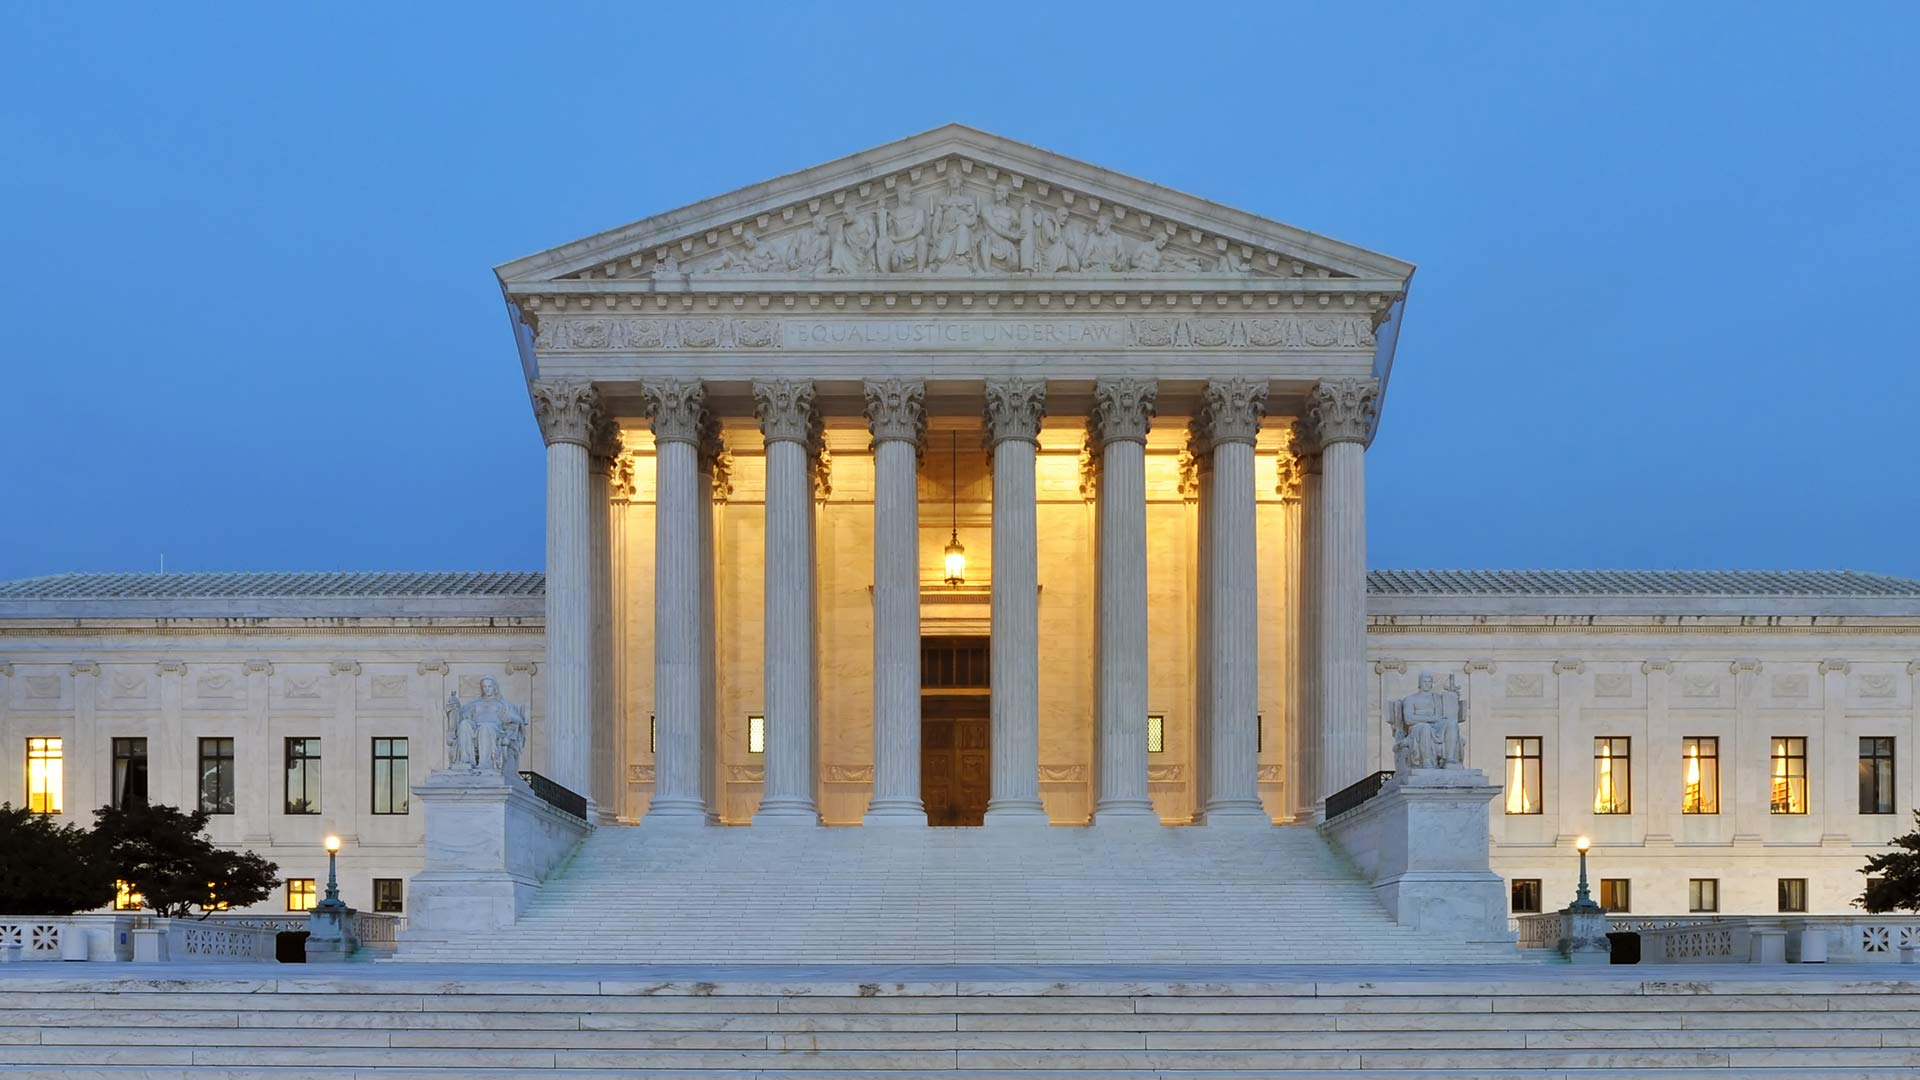 The west facade of United States Supreme Court Building at dusk in Washington, D.C., USA. From October 2011.